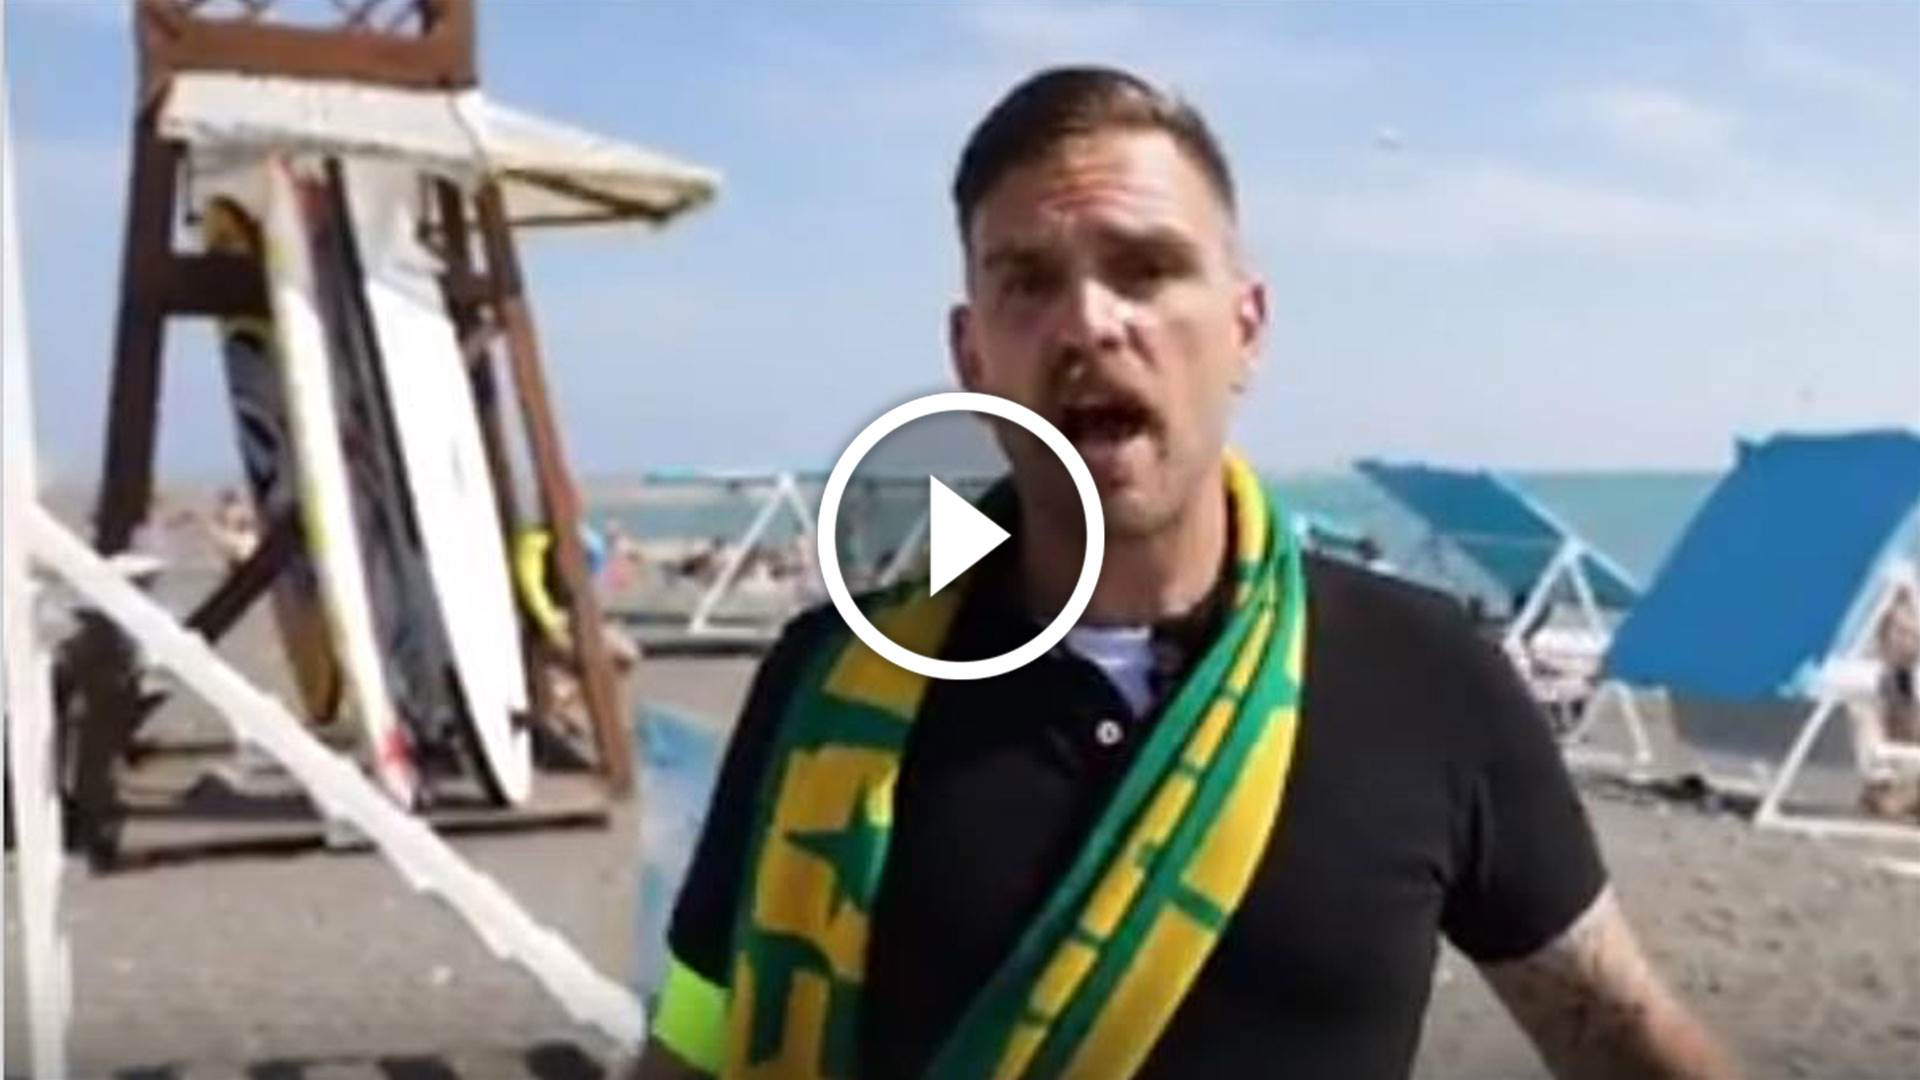 Watch: Some crazy Cahill fandom on the streets of Sochi